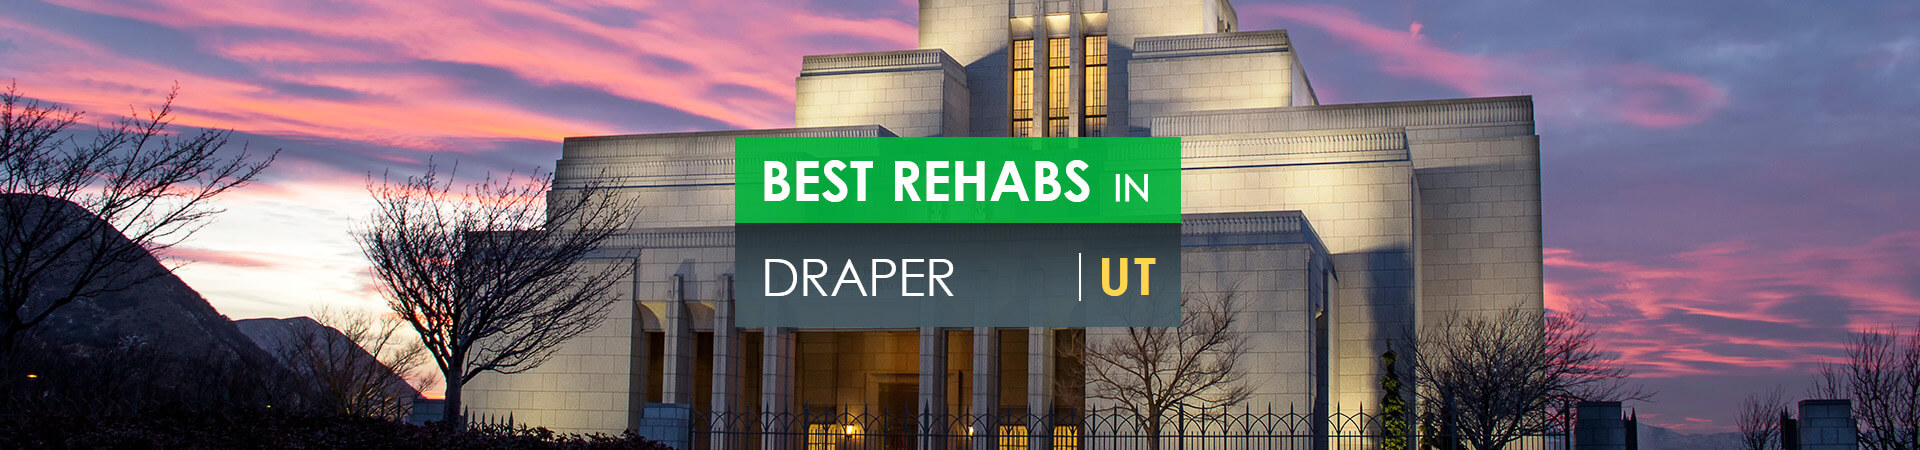 Best rehabs in Draper, UT